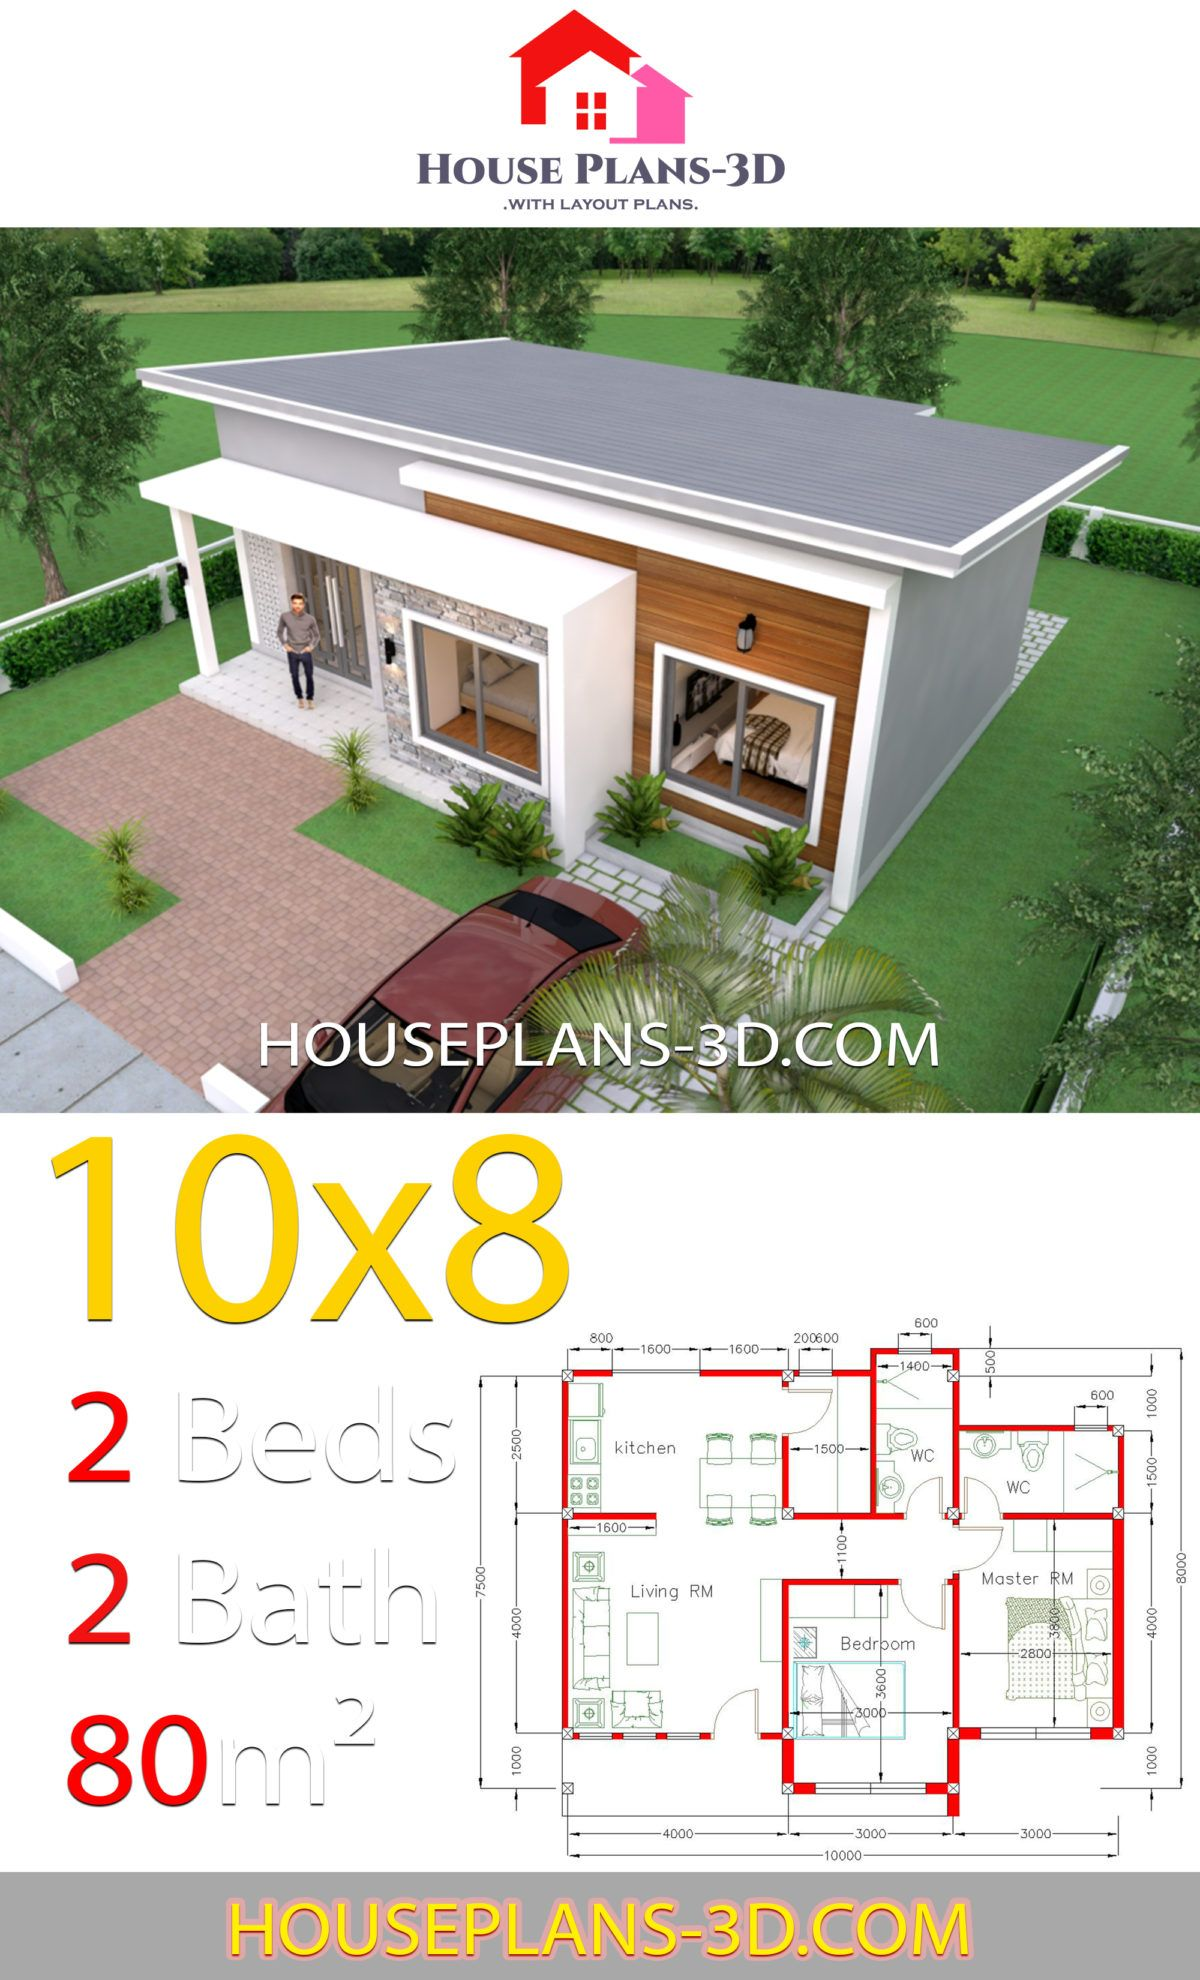 House Plans 10x8 With 2 Bedrooms Shed Roof House Plans 3d In 2020 House Plans Model House Plan Double Storey House Plans